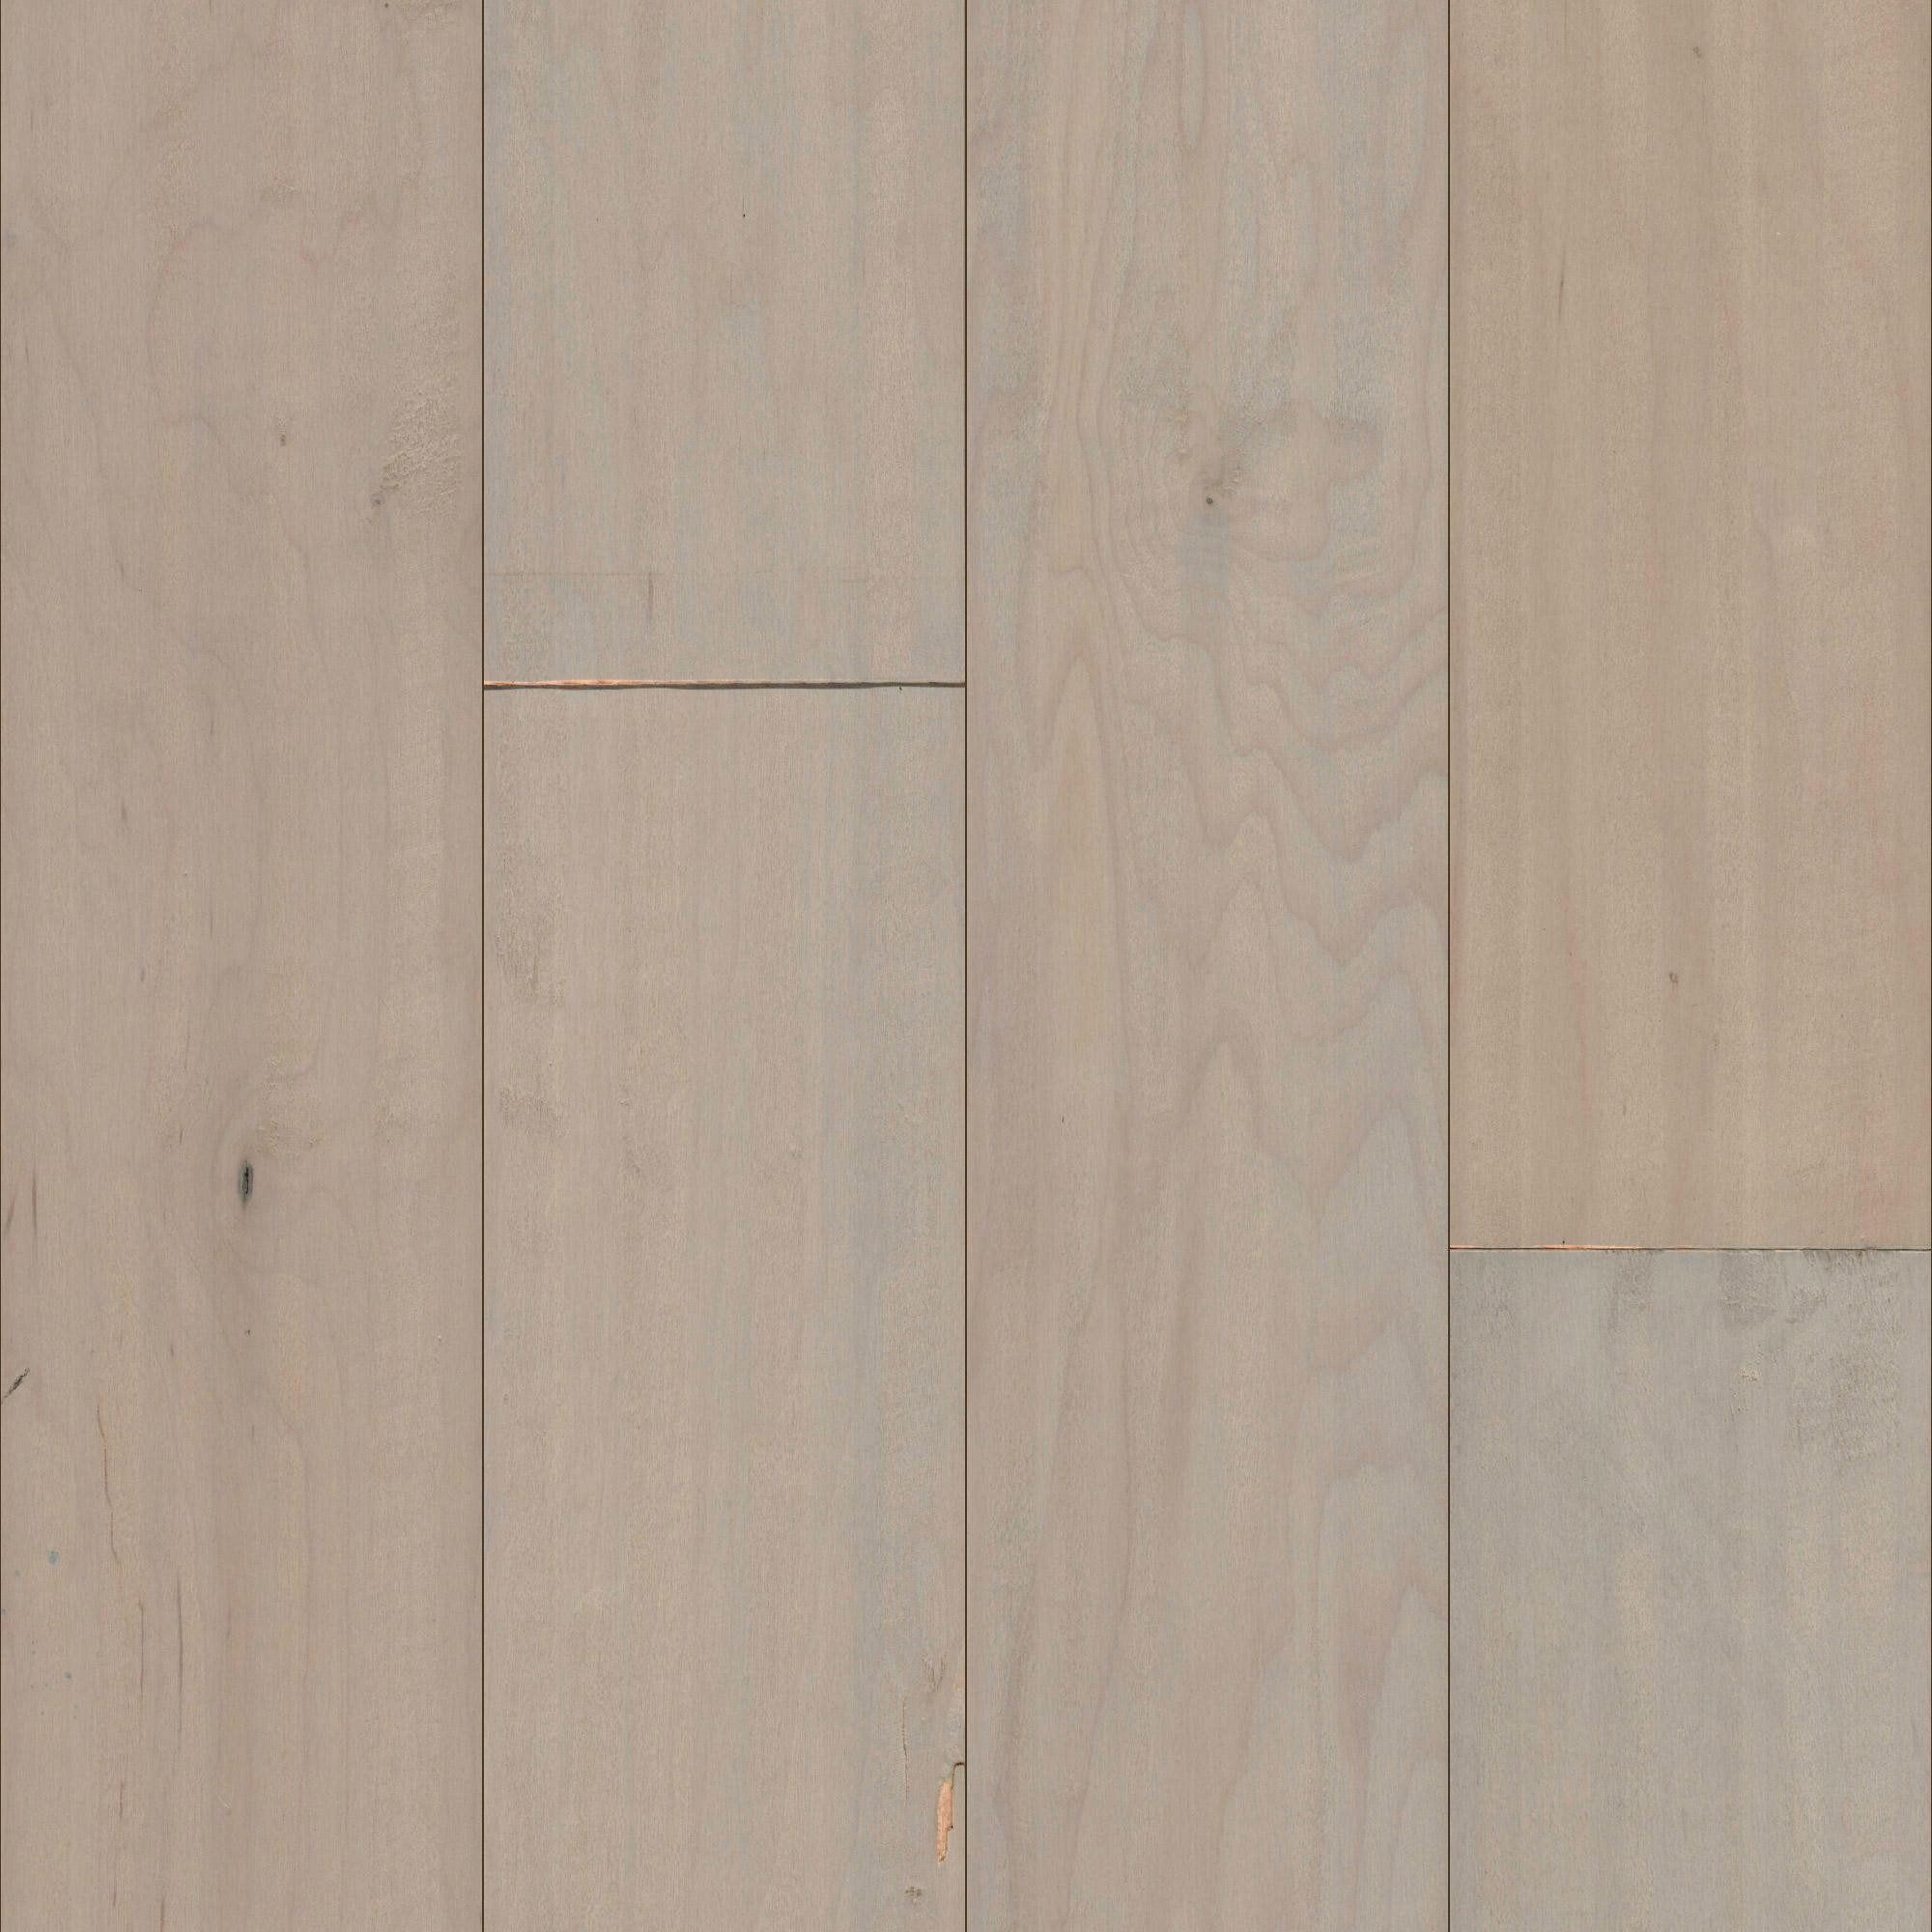 how to install 5 inch hardwood floor of mullican lincolnshire sculpted maple frost 5 engineered hardwood in mullican lincolnshire sculpted maple frost 5 engineered hardwood flooring